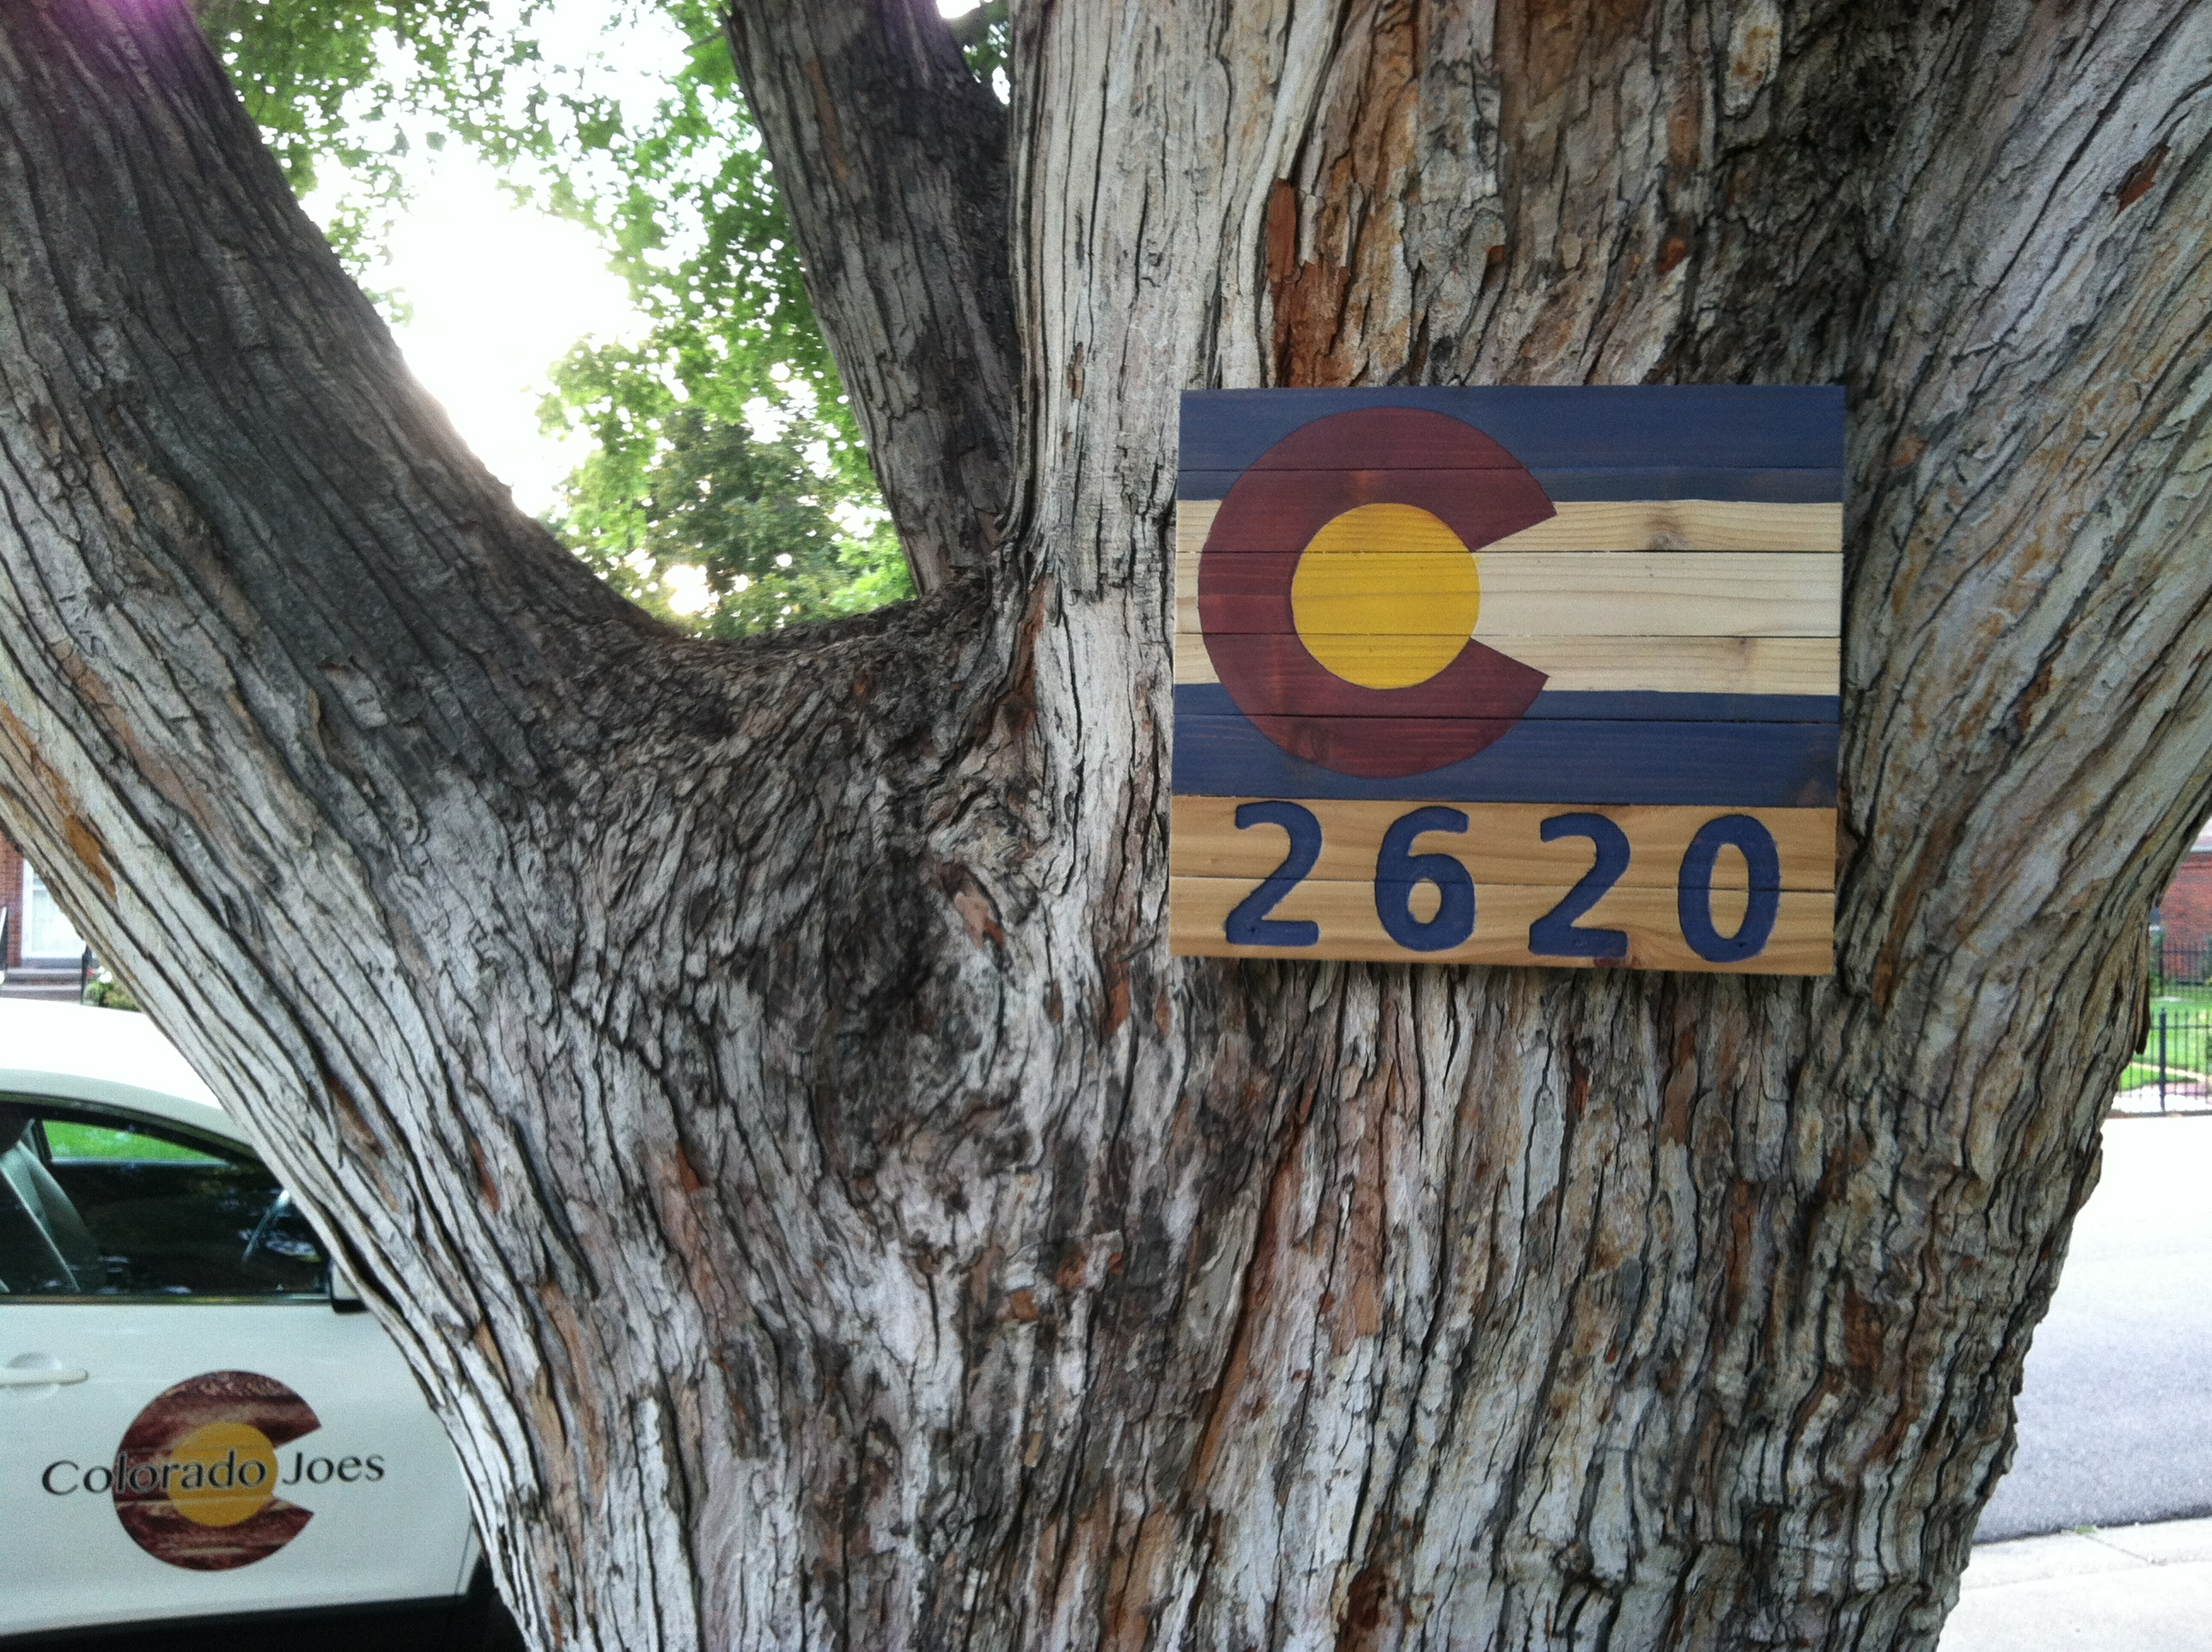 Colorado House Number